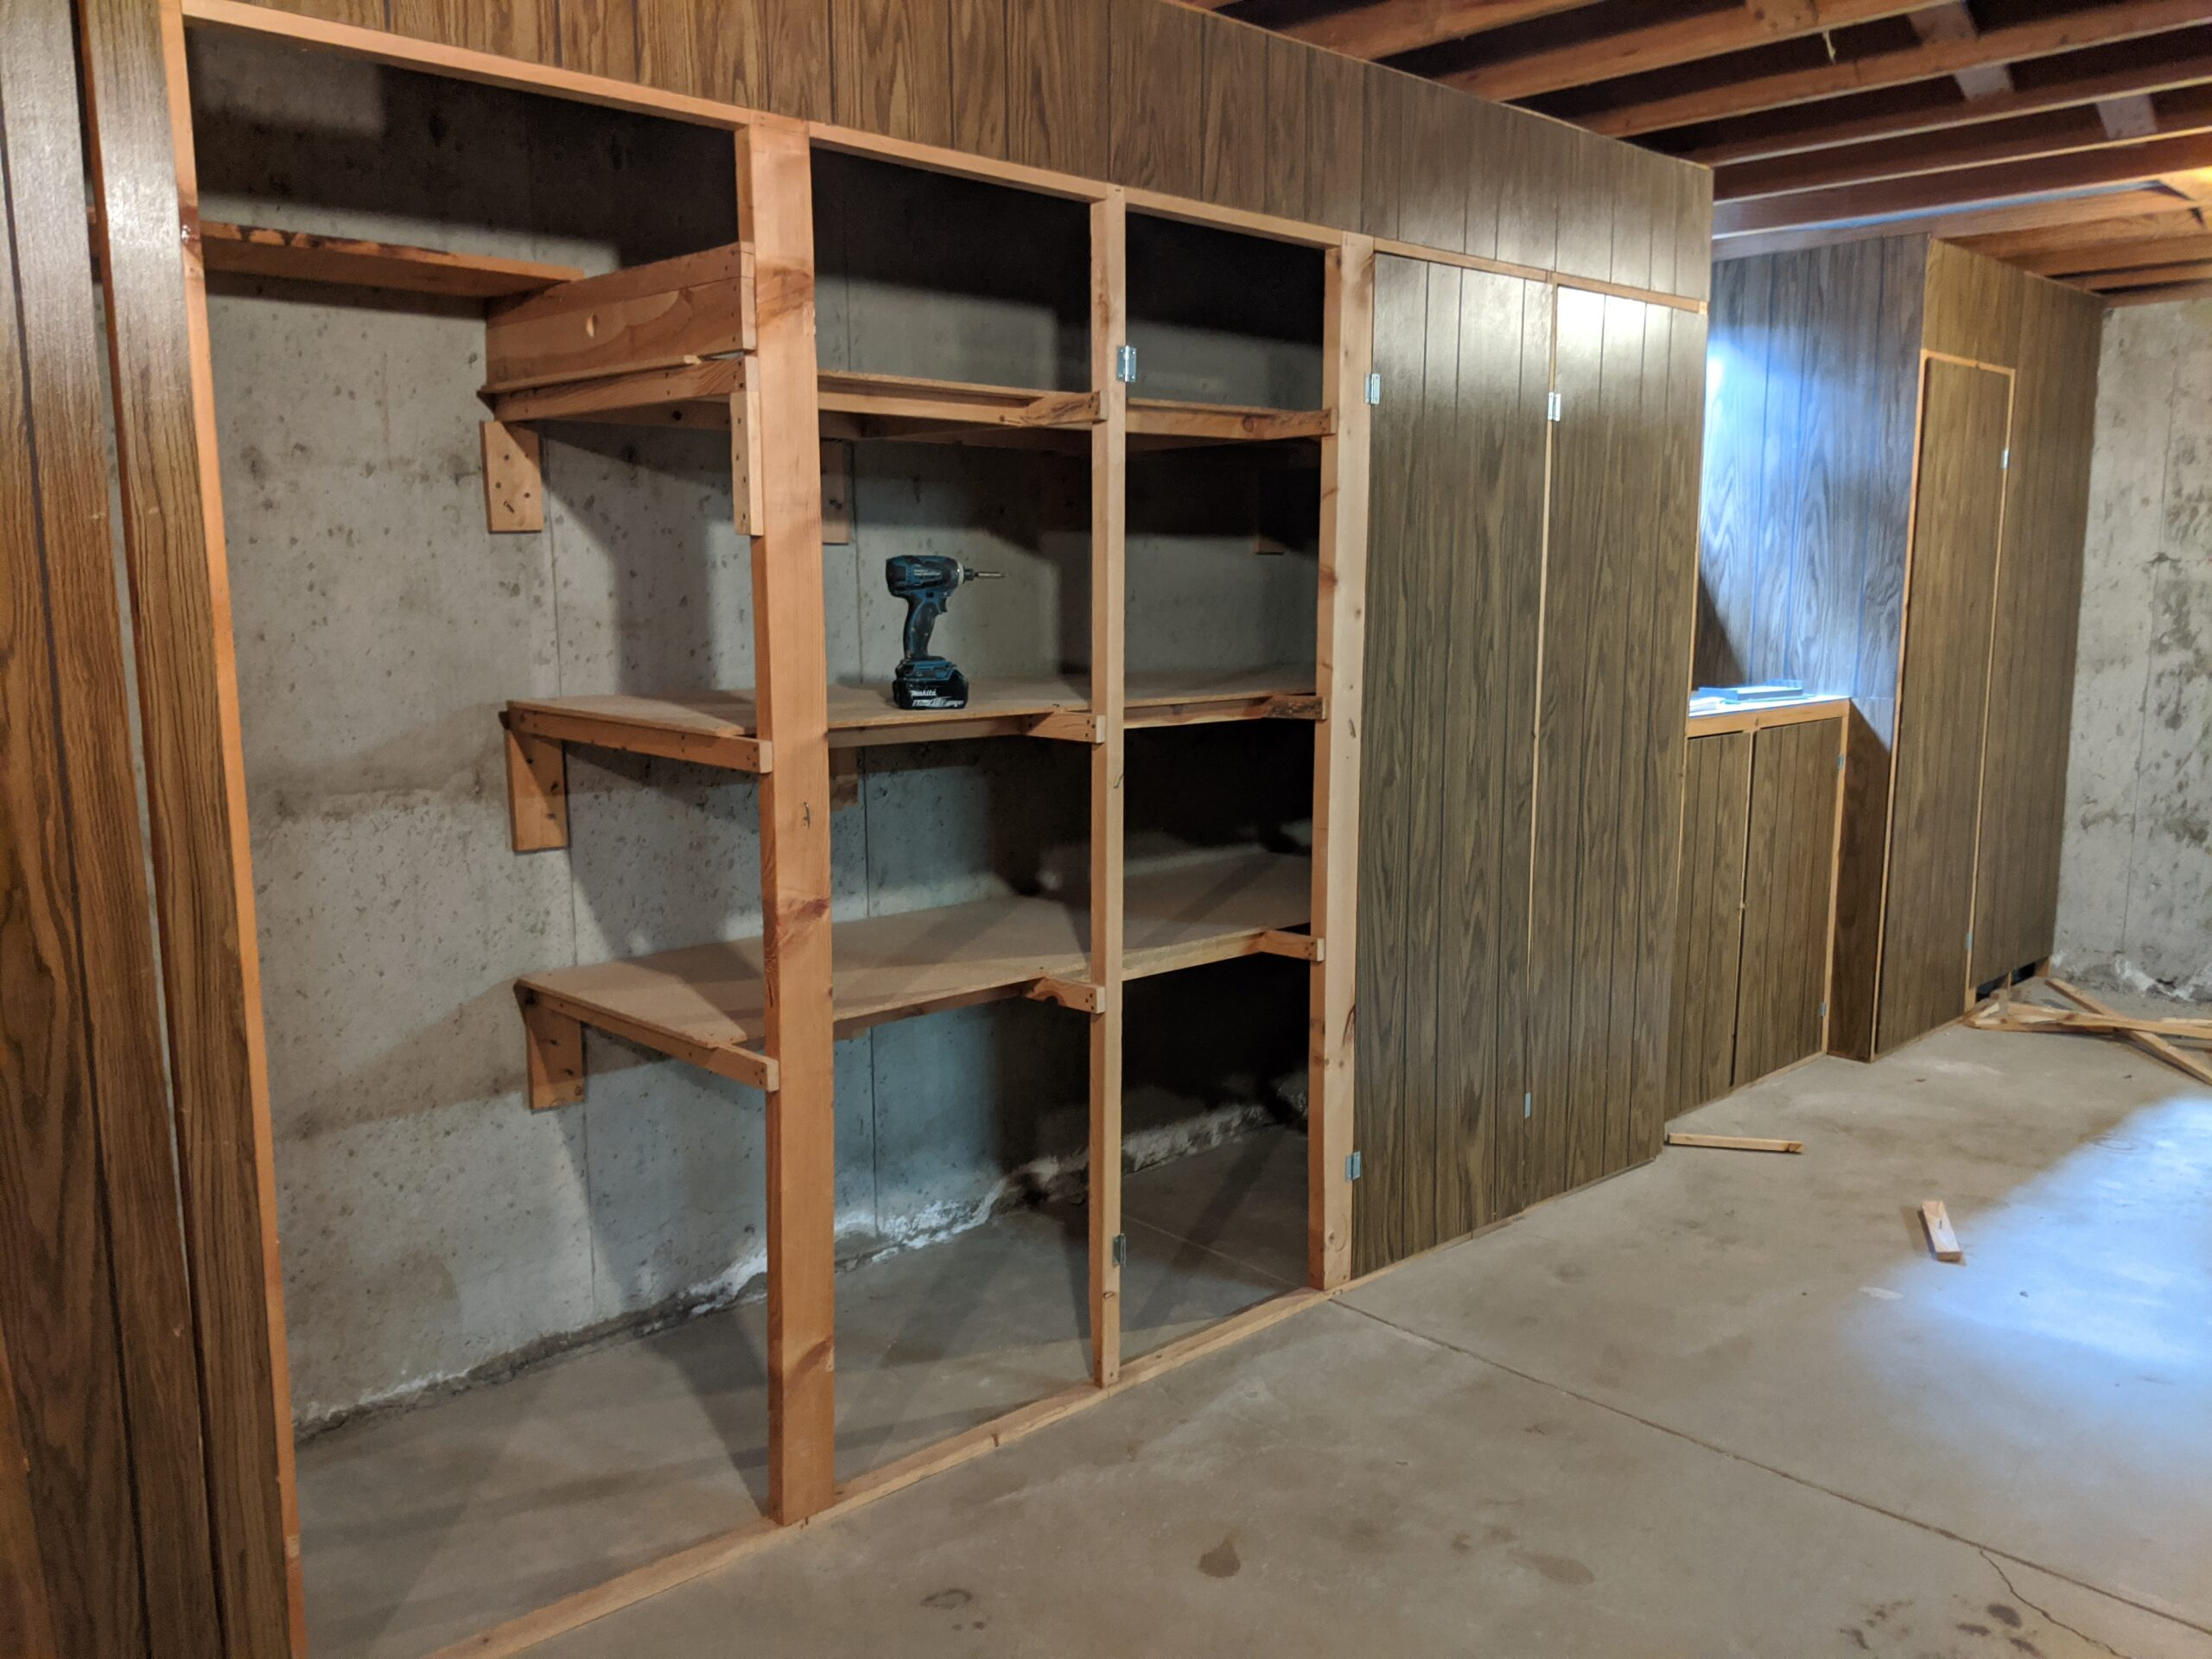 We'll replace these cabinets in the basement with a 100-square-foot storage room.